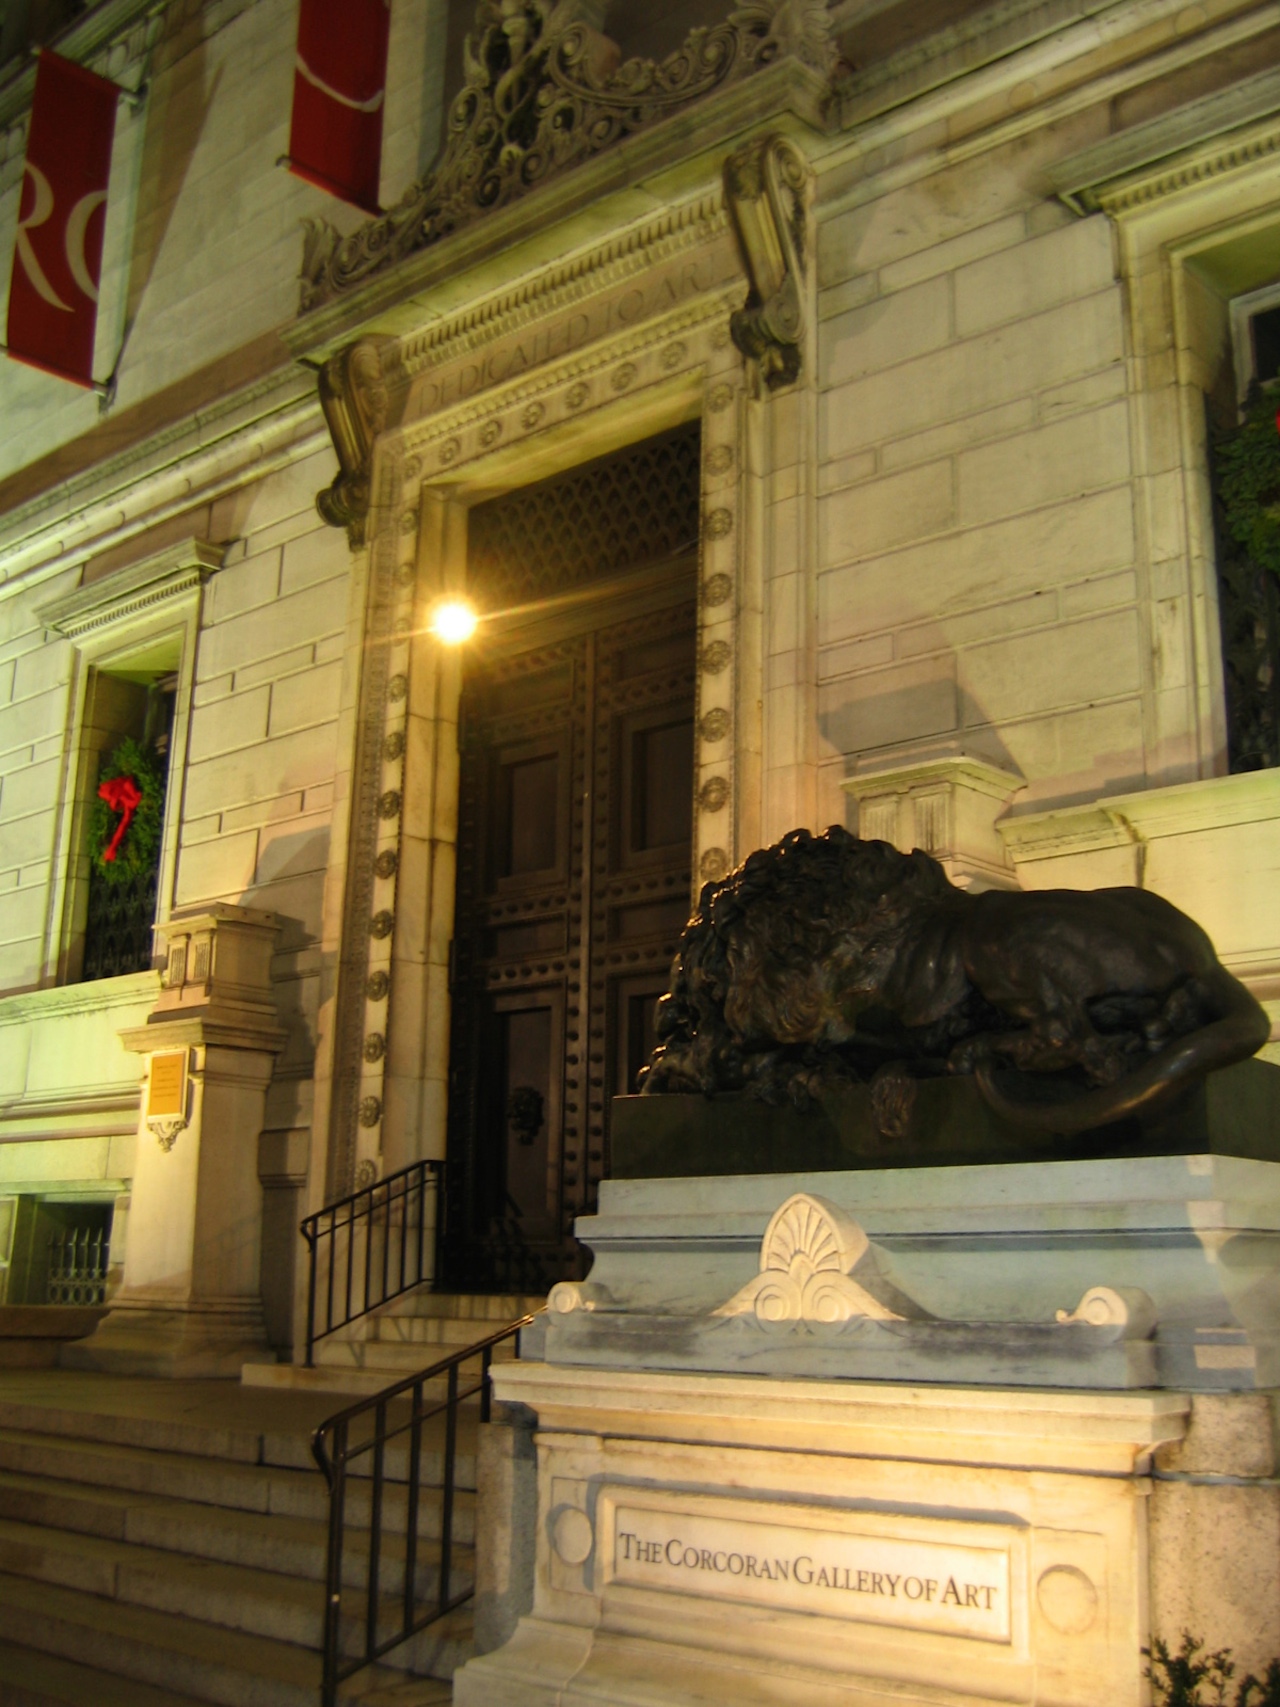 Corcoran_gallery_entrance (click to enlarge)